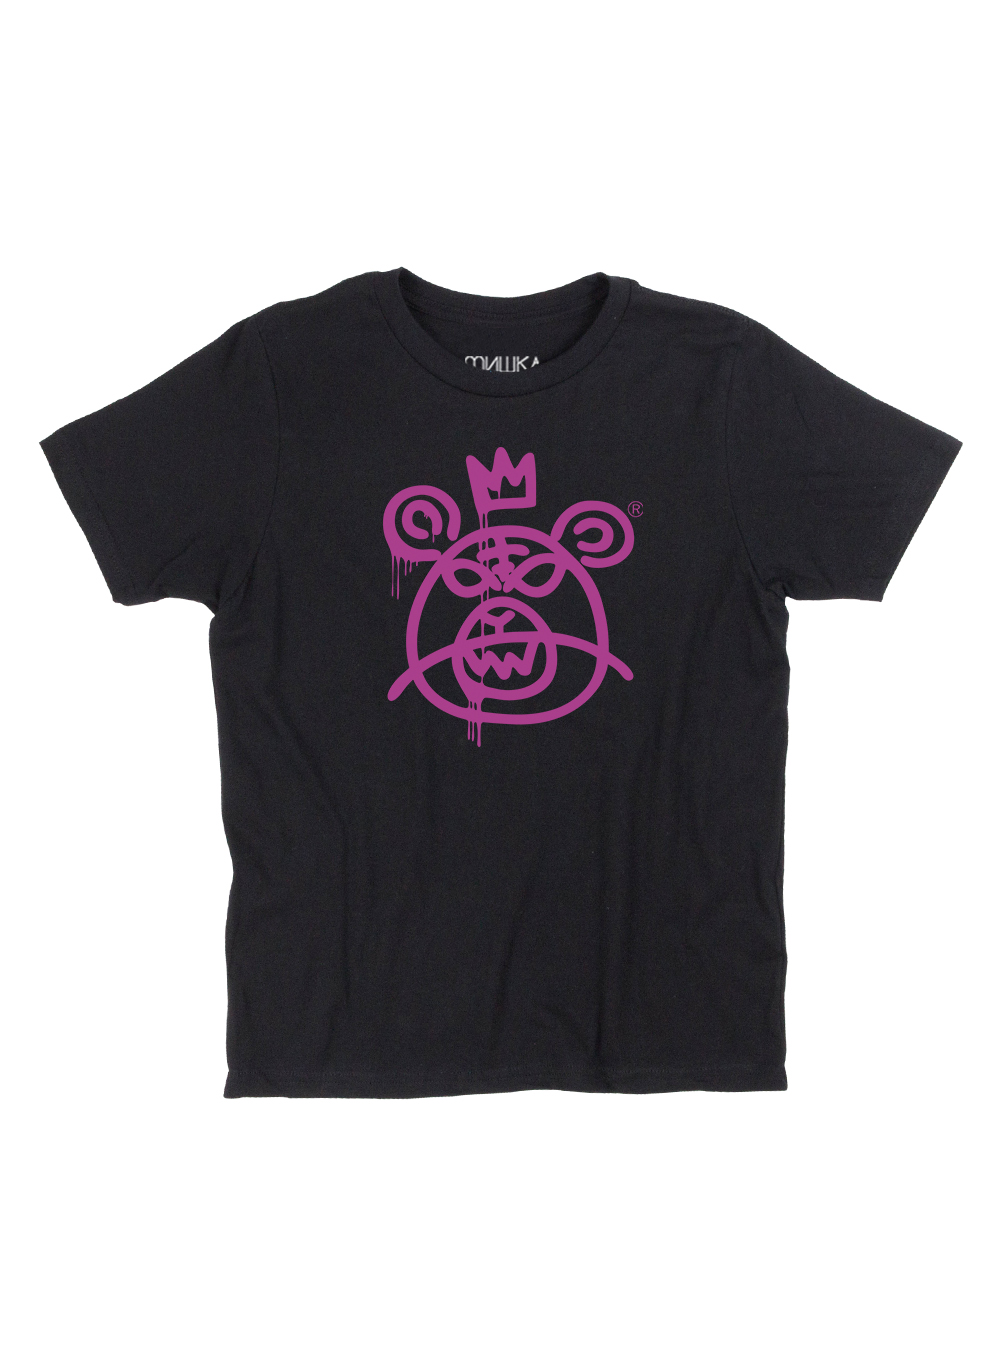 Classic Bear Mop Youth Tee